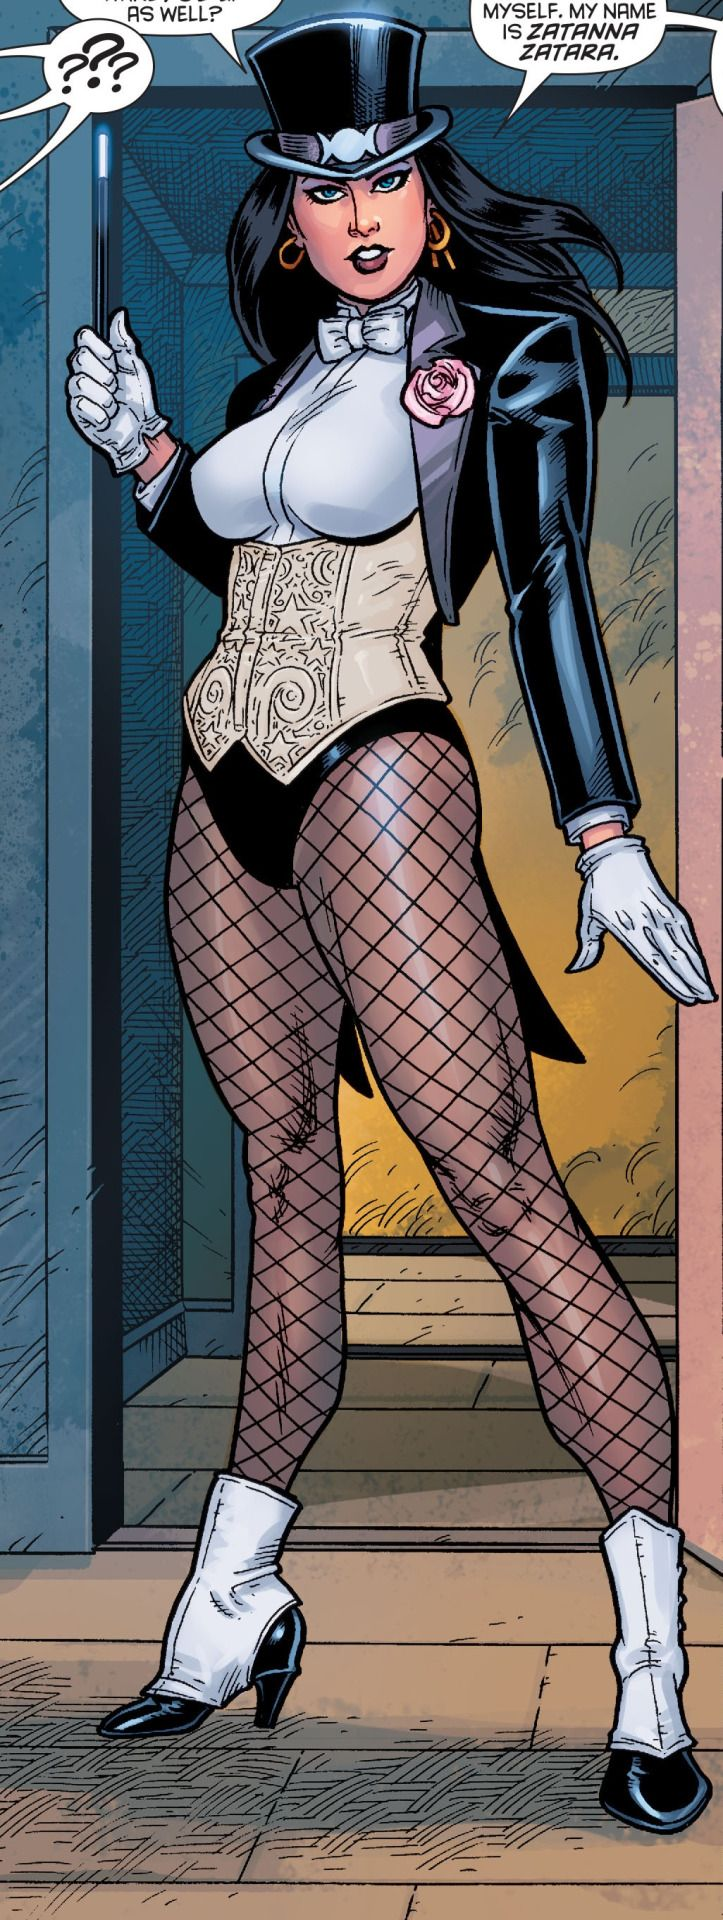 17 Best Images About Zatanna On Pinterest